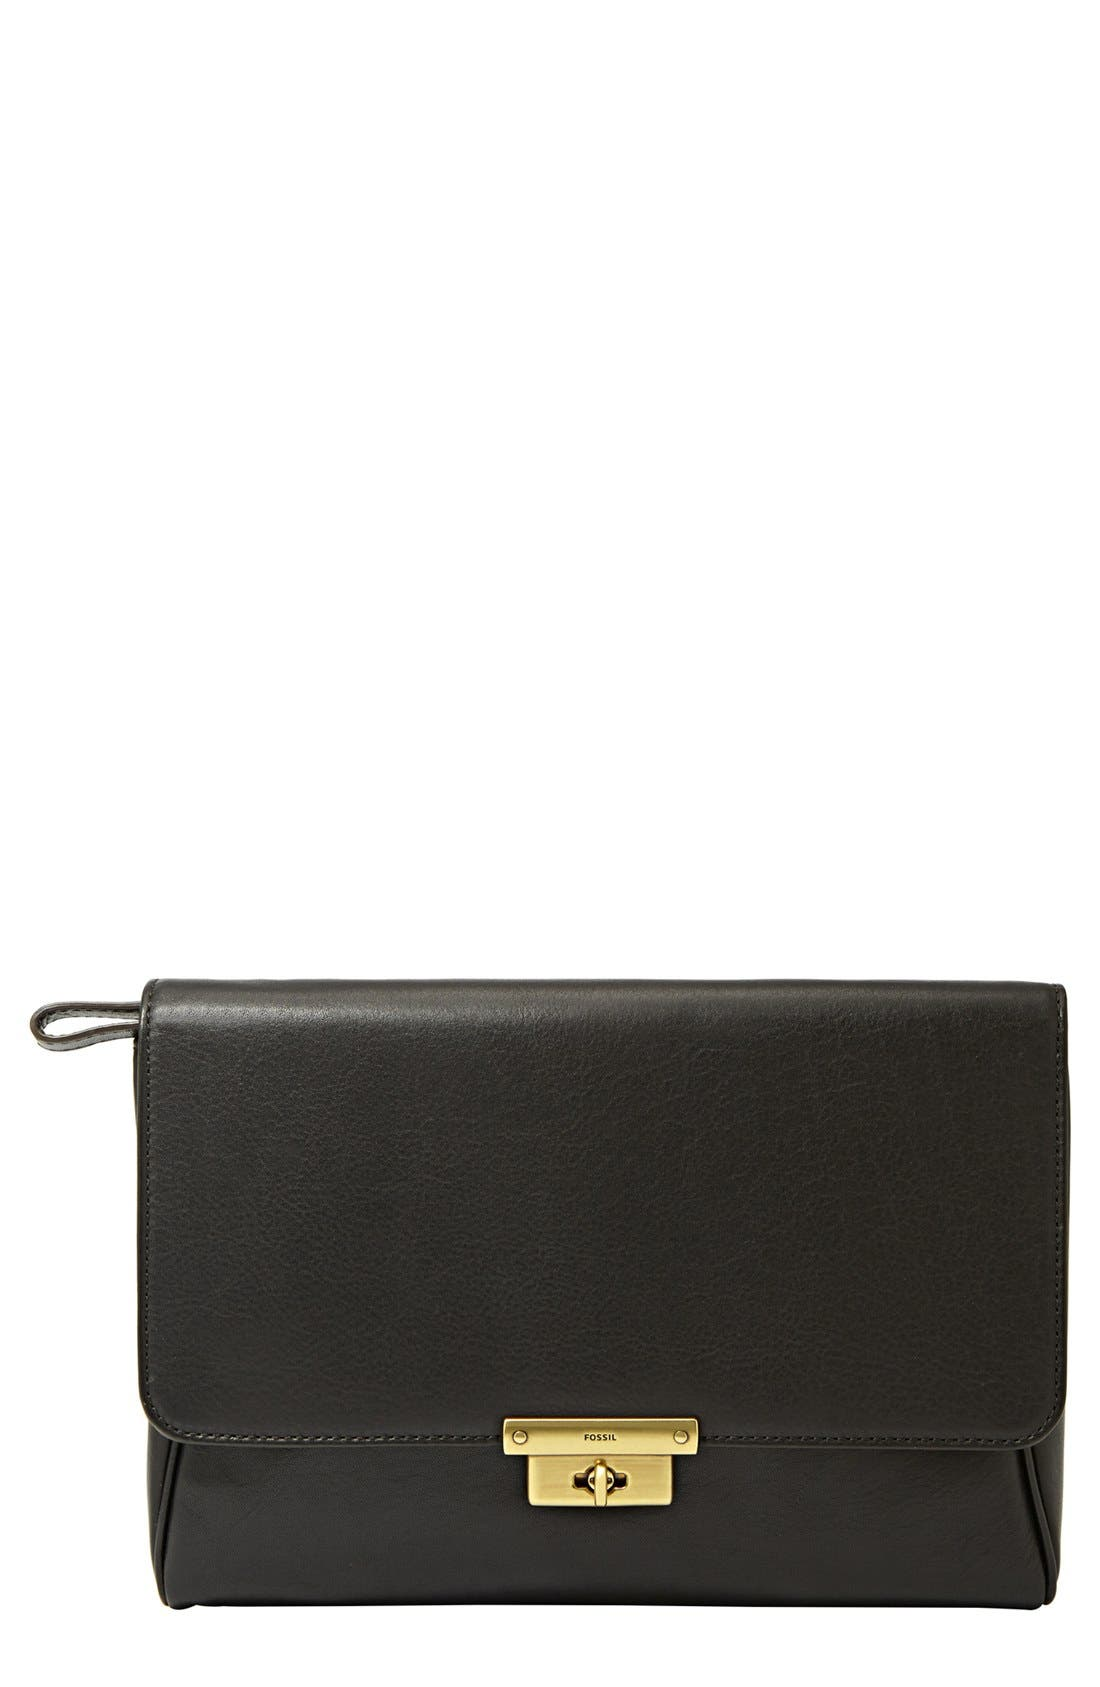 Alternate Image 1 Selected - Fossil 'Memoir' Leather Clutch